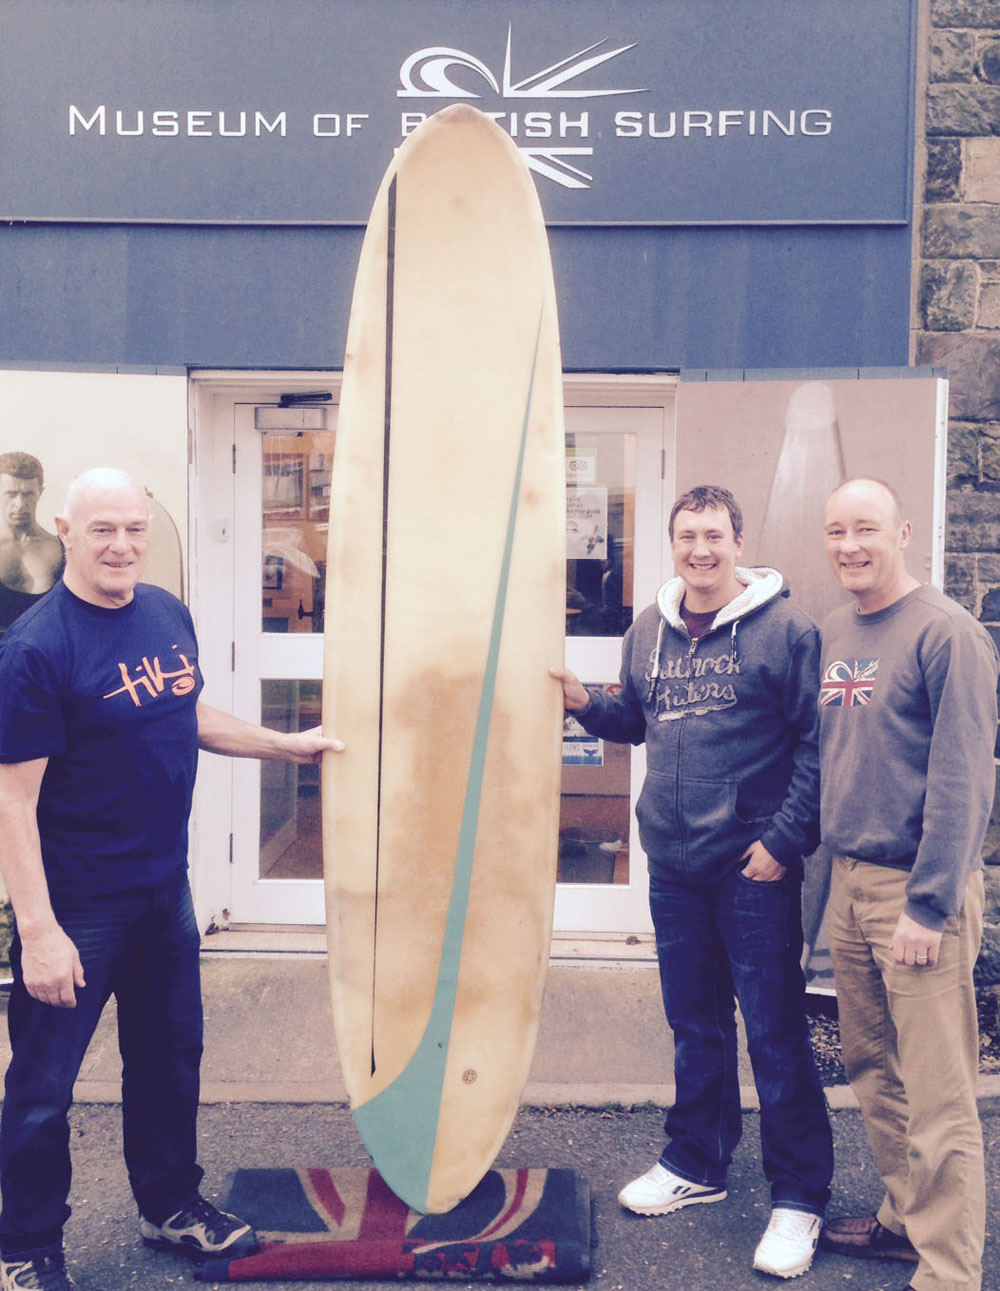 Vintage surfboard auction raising funds for museum